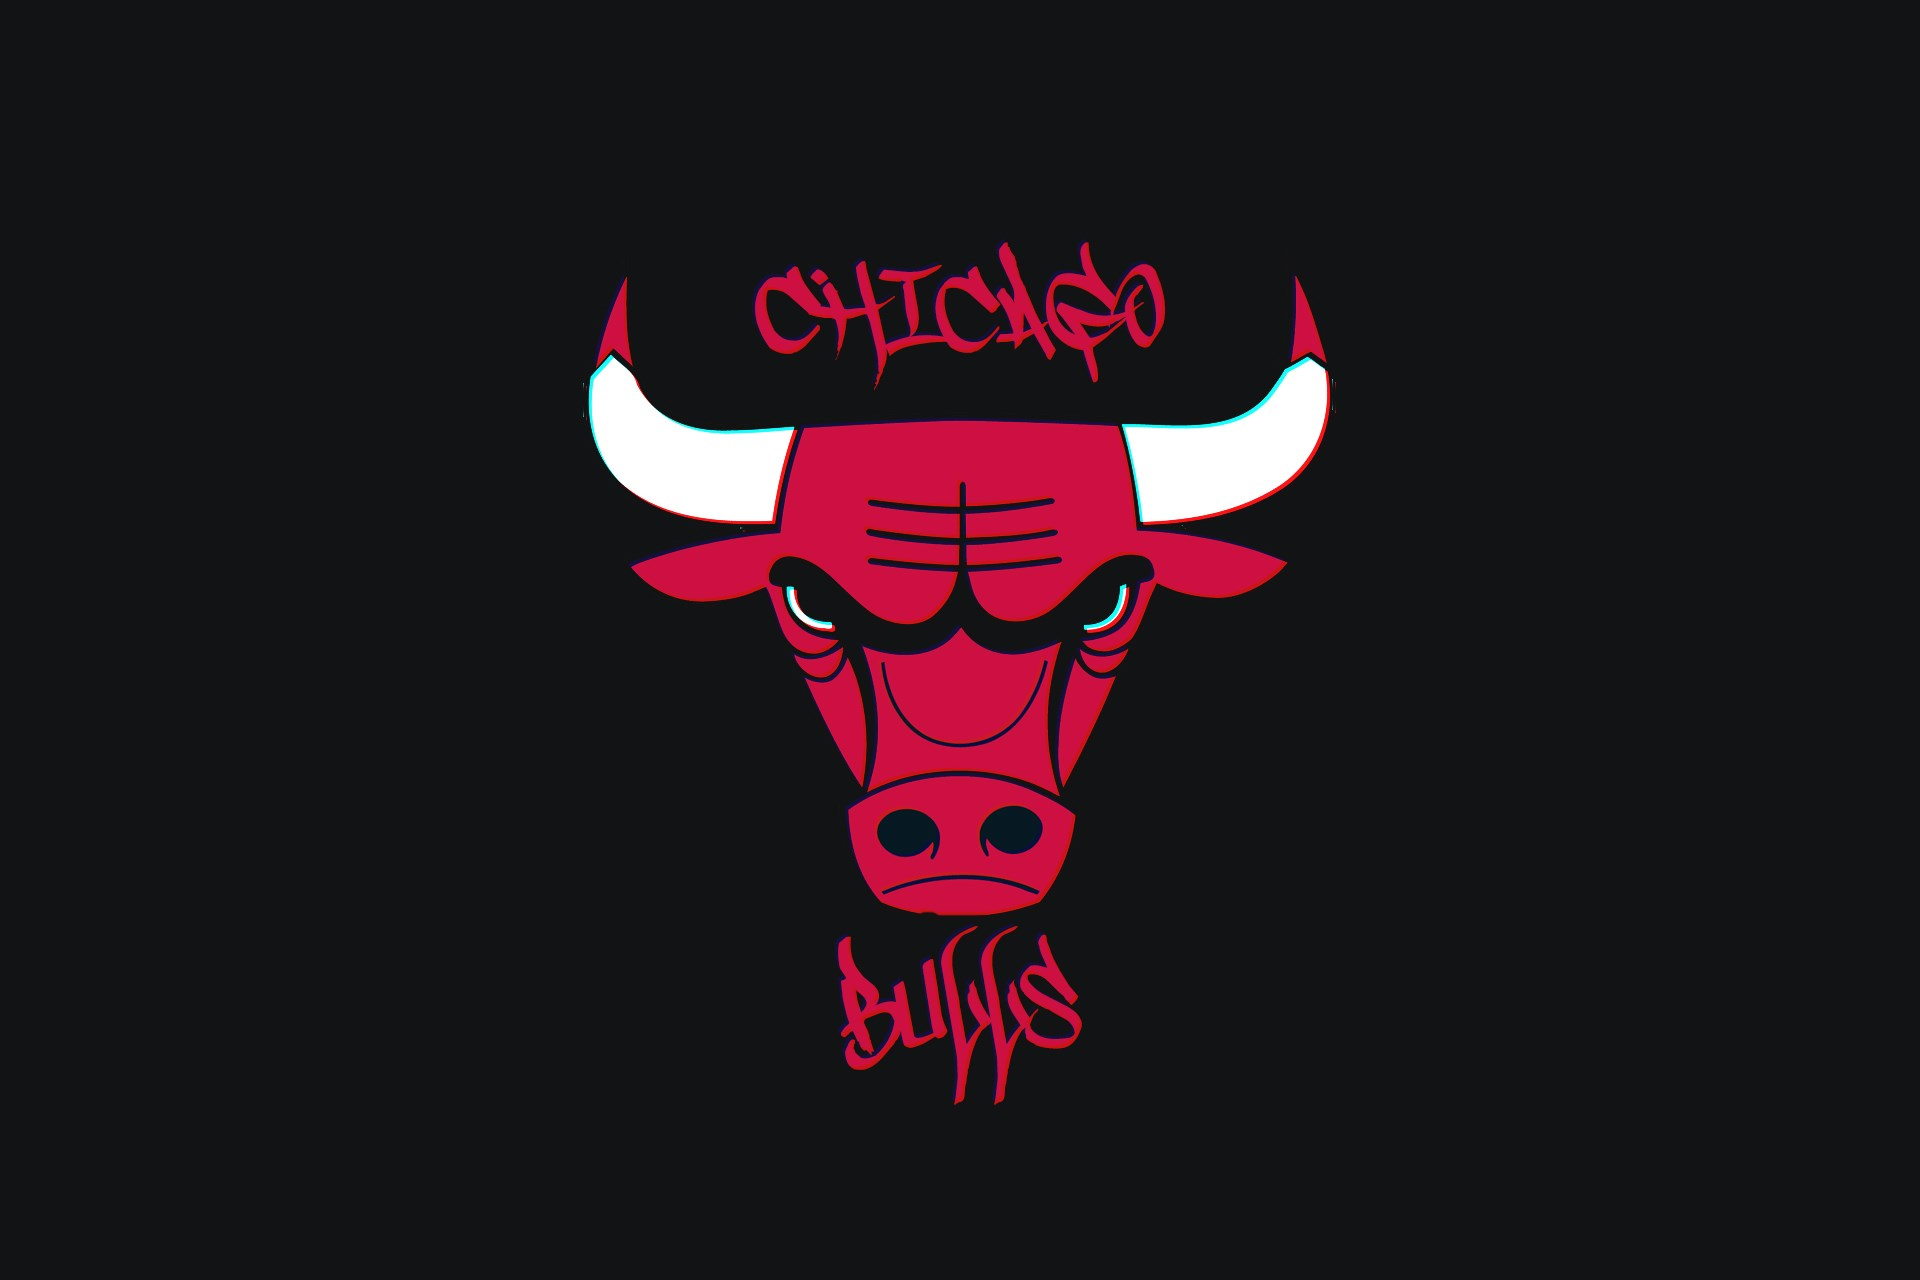 Claxton-Robertson-widescreen-backgrounds-chicago-bulls-1920-x-px-wallpaper-wp3803827